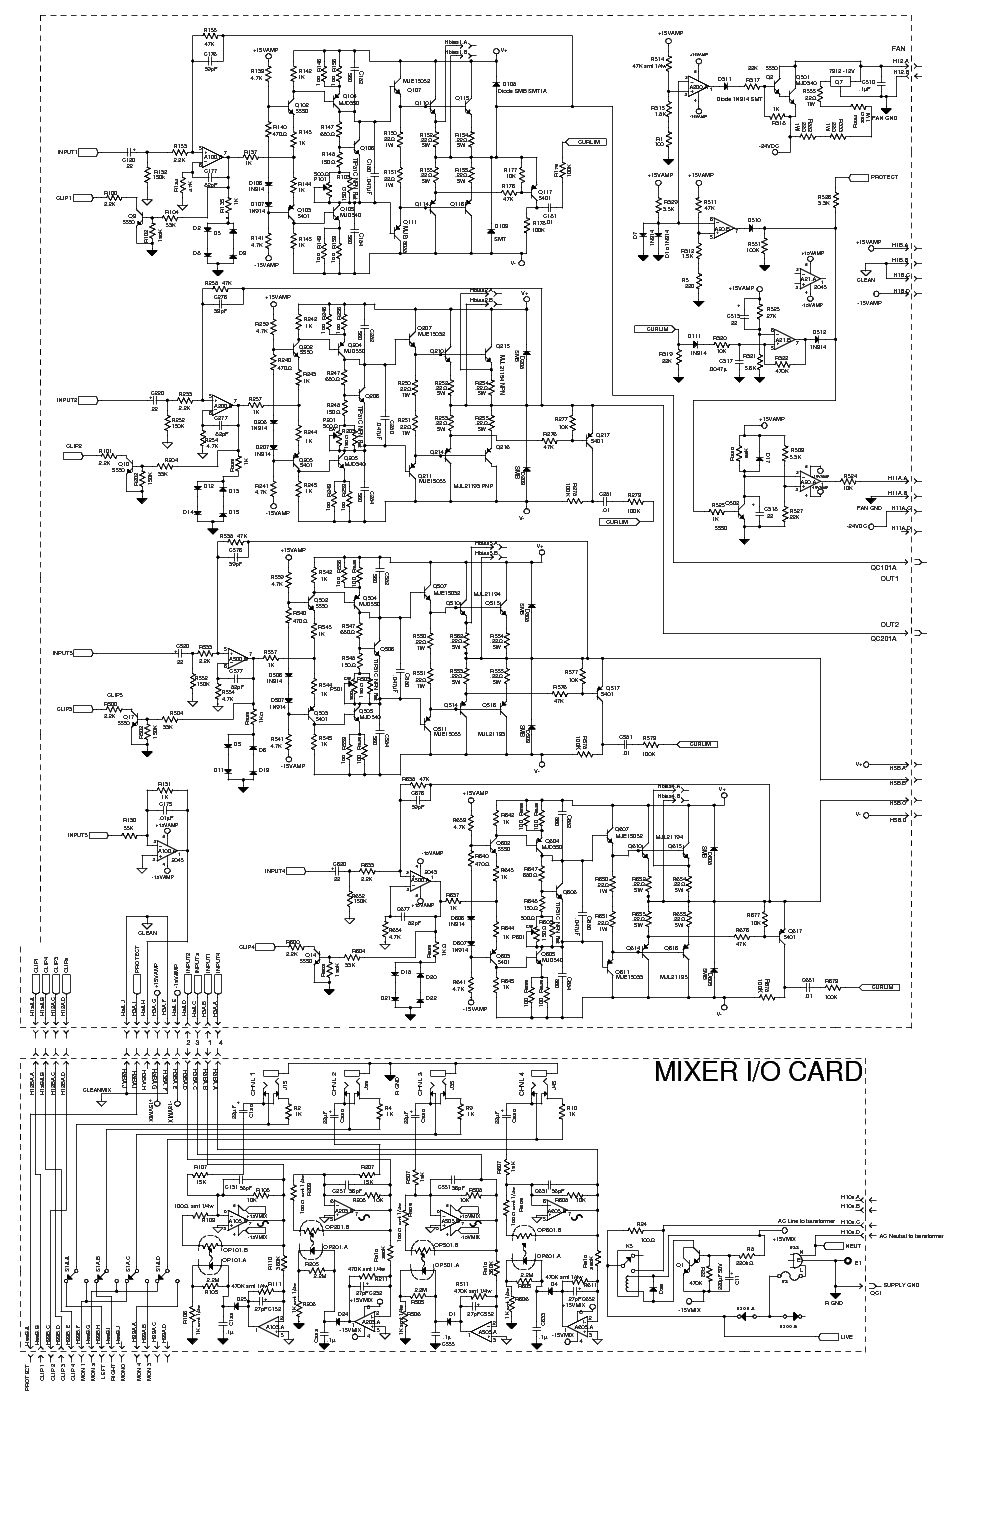 digital vu meter schematic